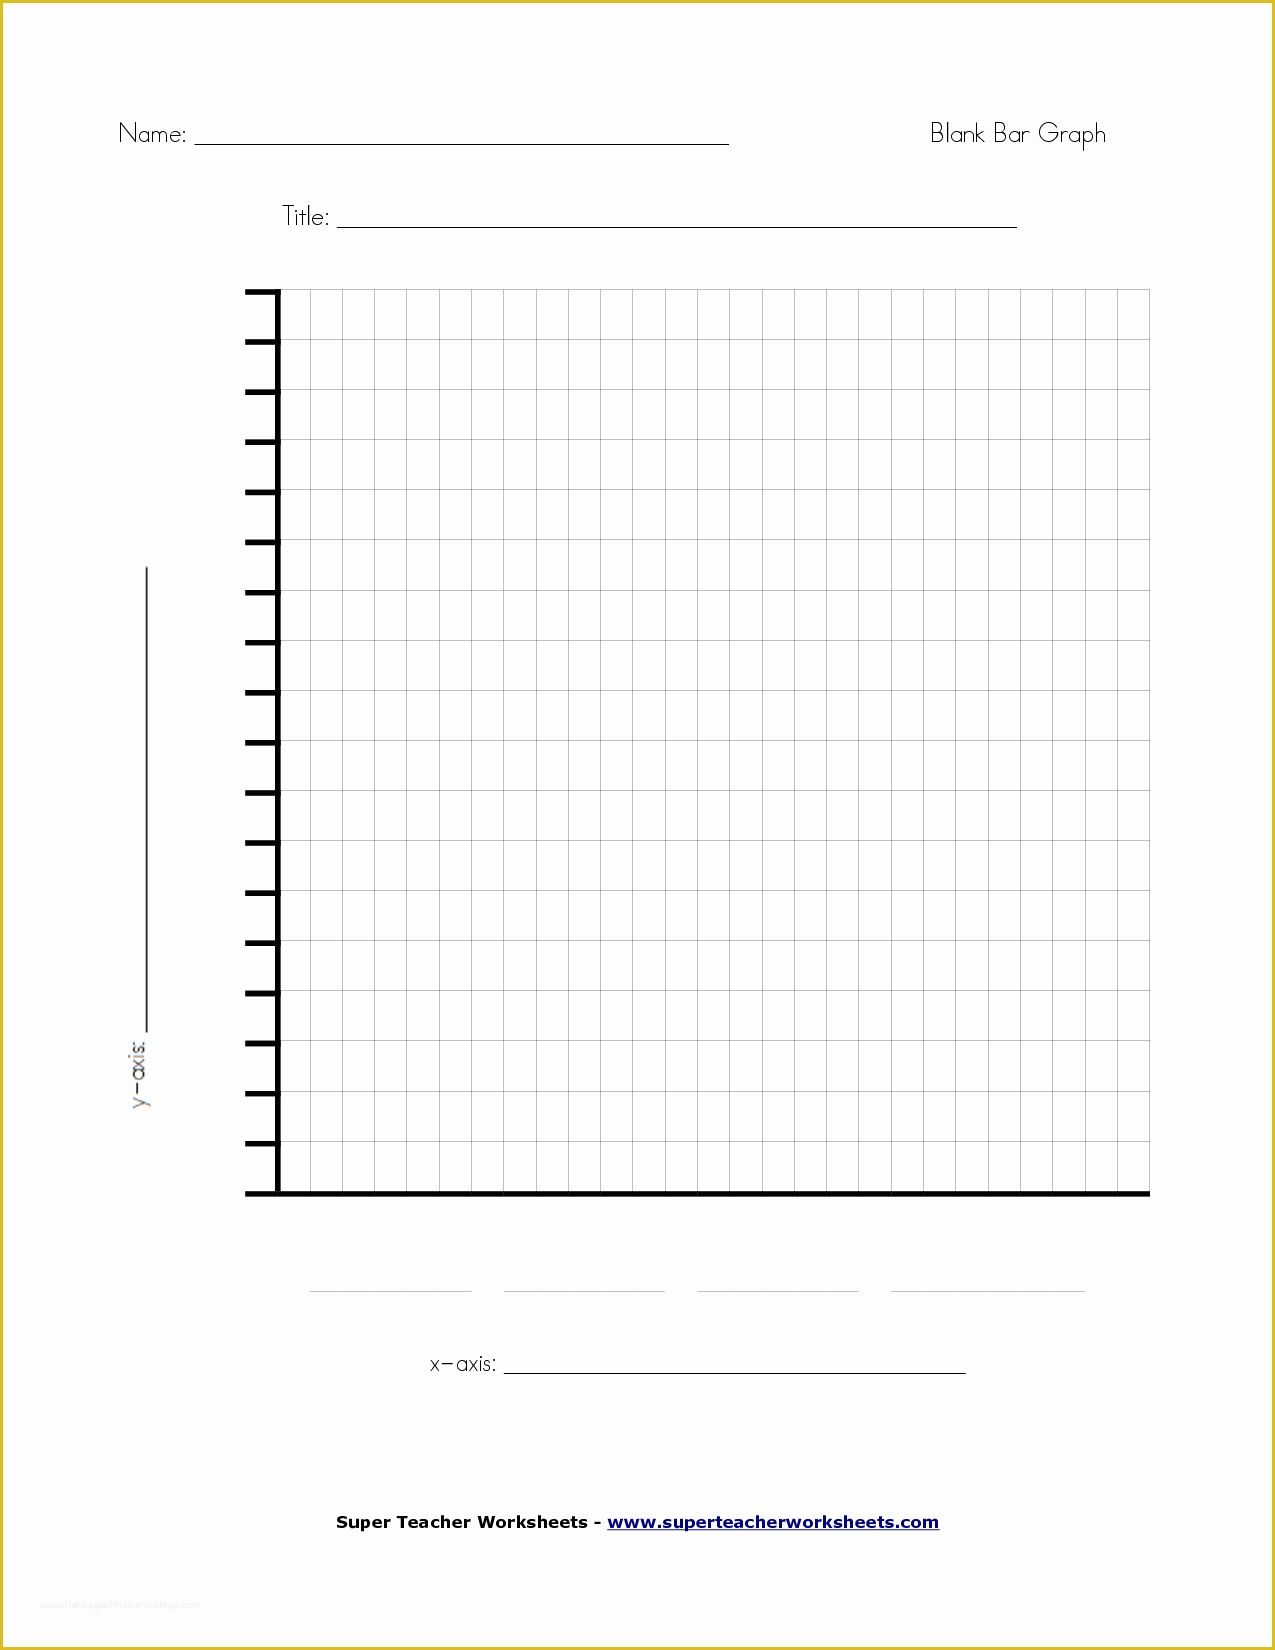 medium resolution of Blank Bar Graph Worksheet   Printable Worksheets and Activities for  Teachers